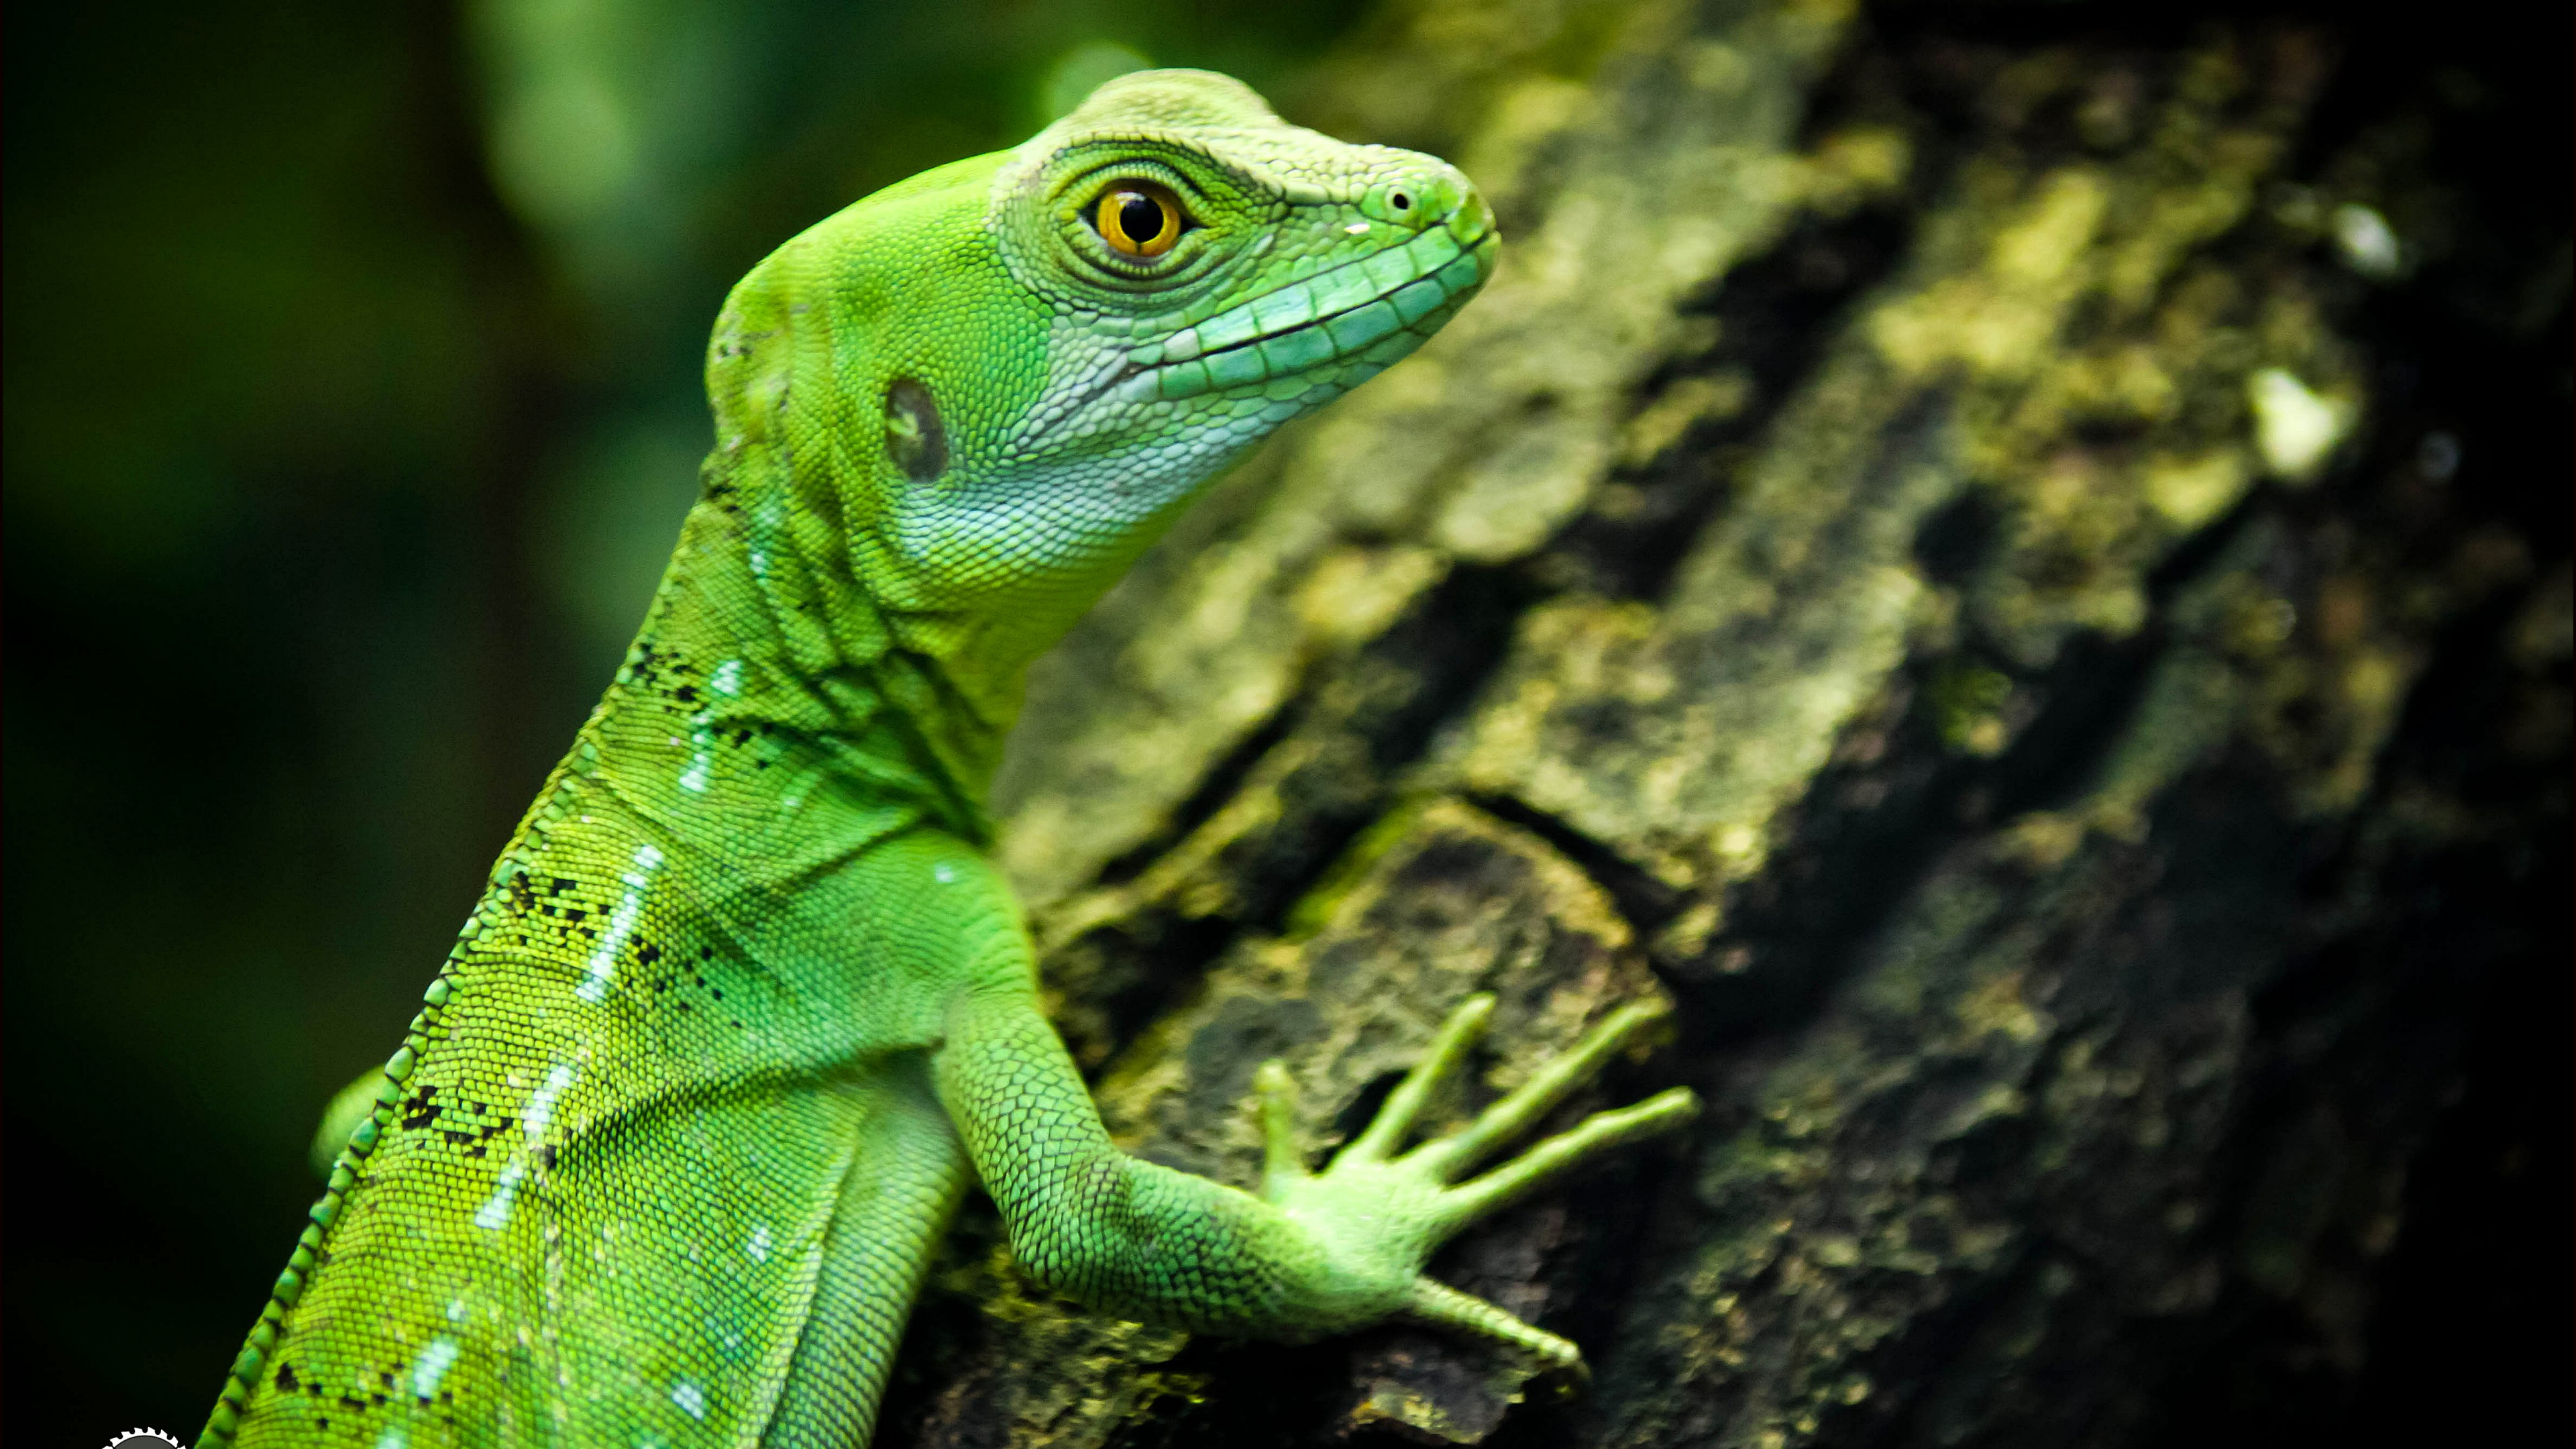 Cute Nature Wallpapers With Quotes Wallpaper Lizard Close Up Green Eyes Reptilies